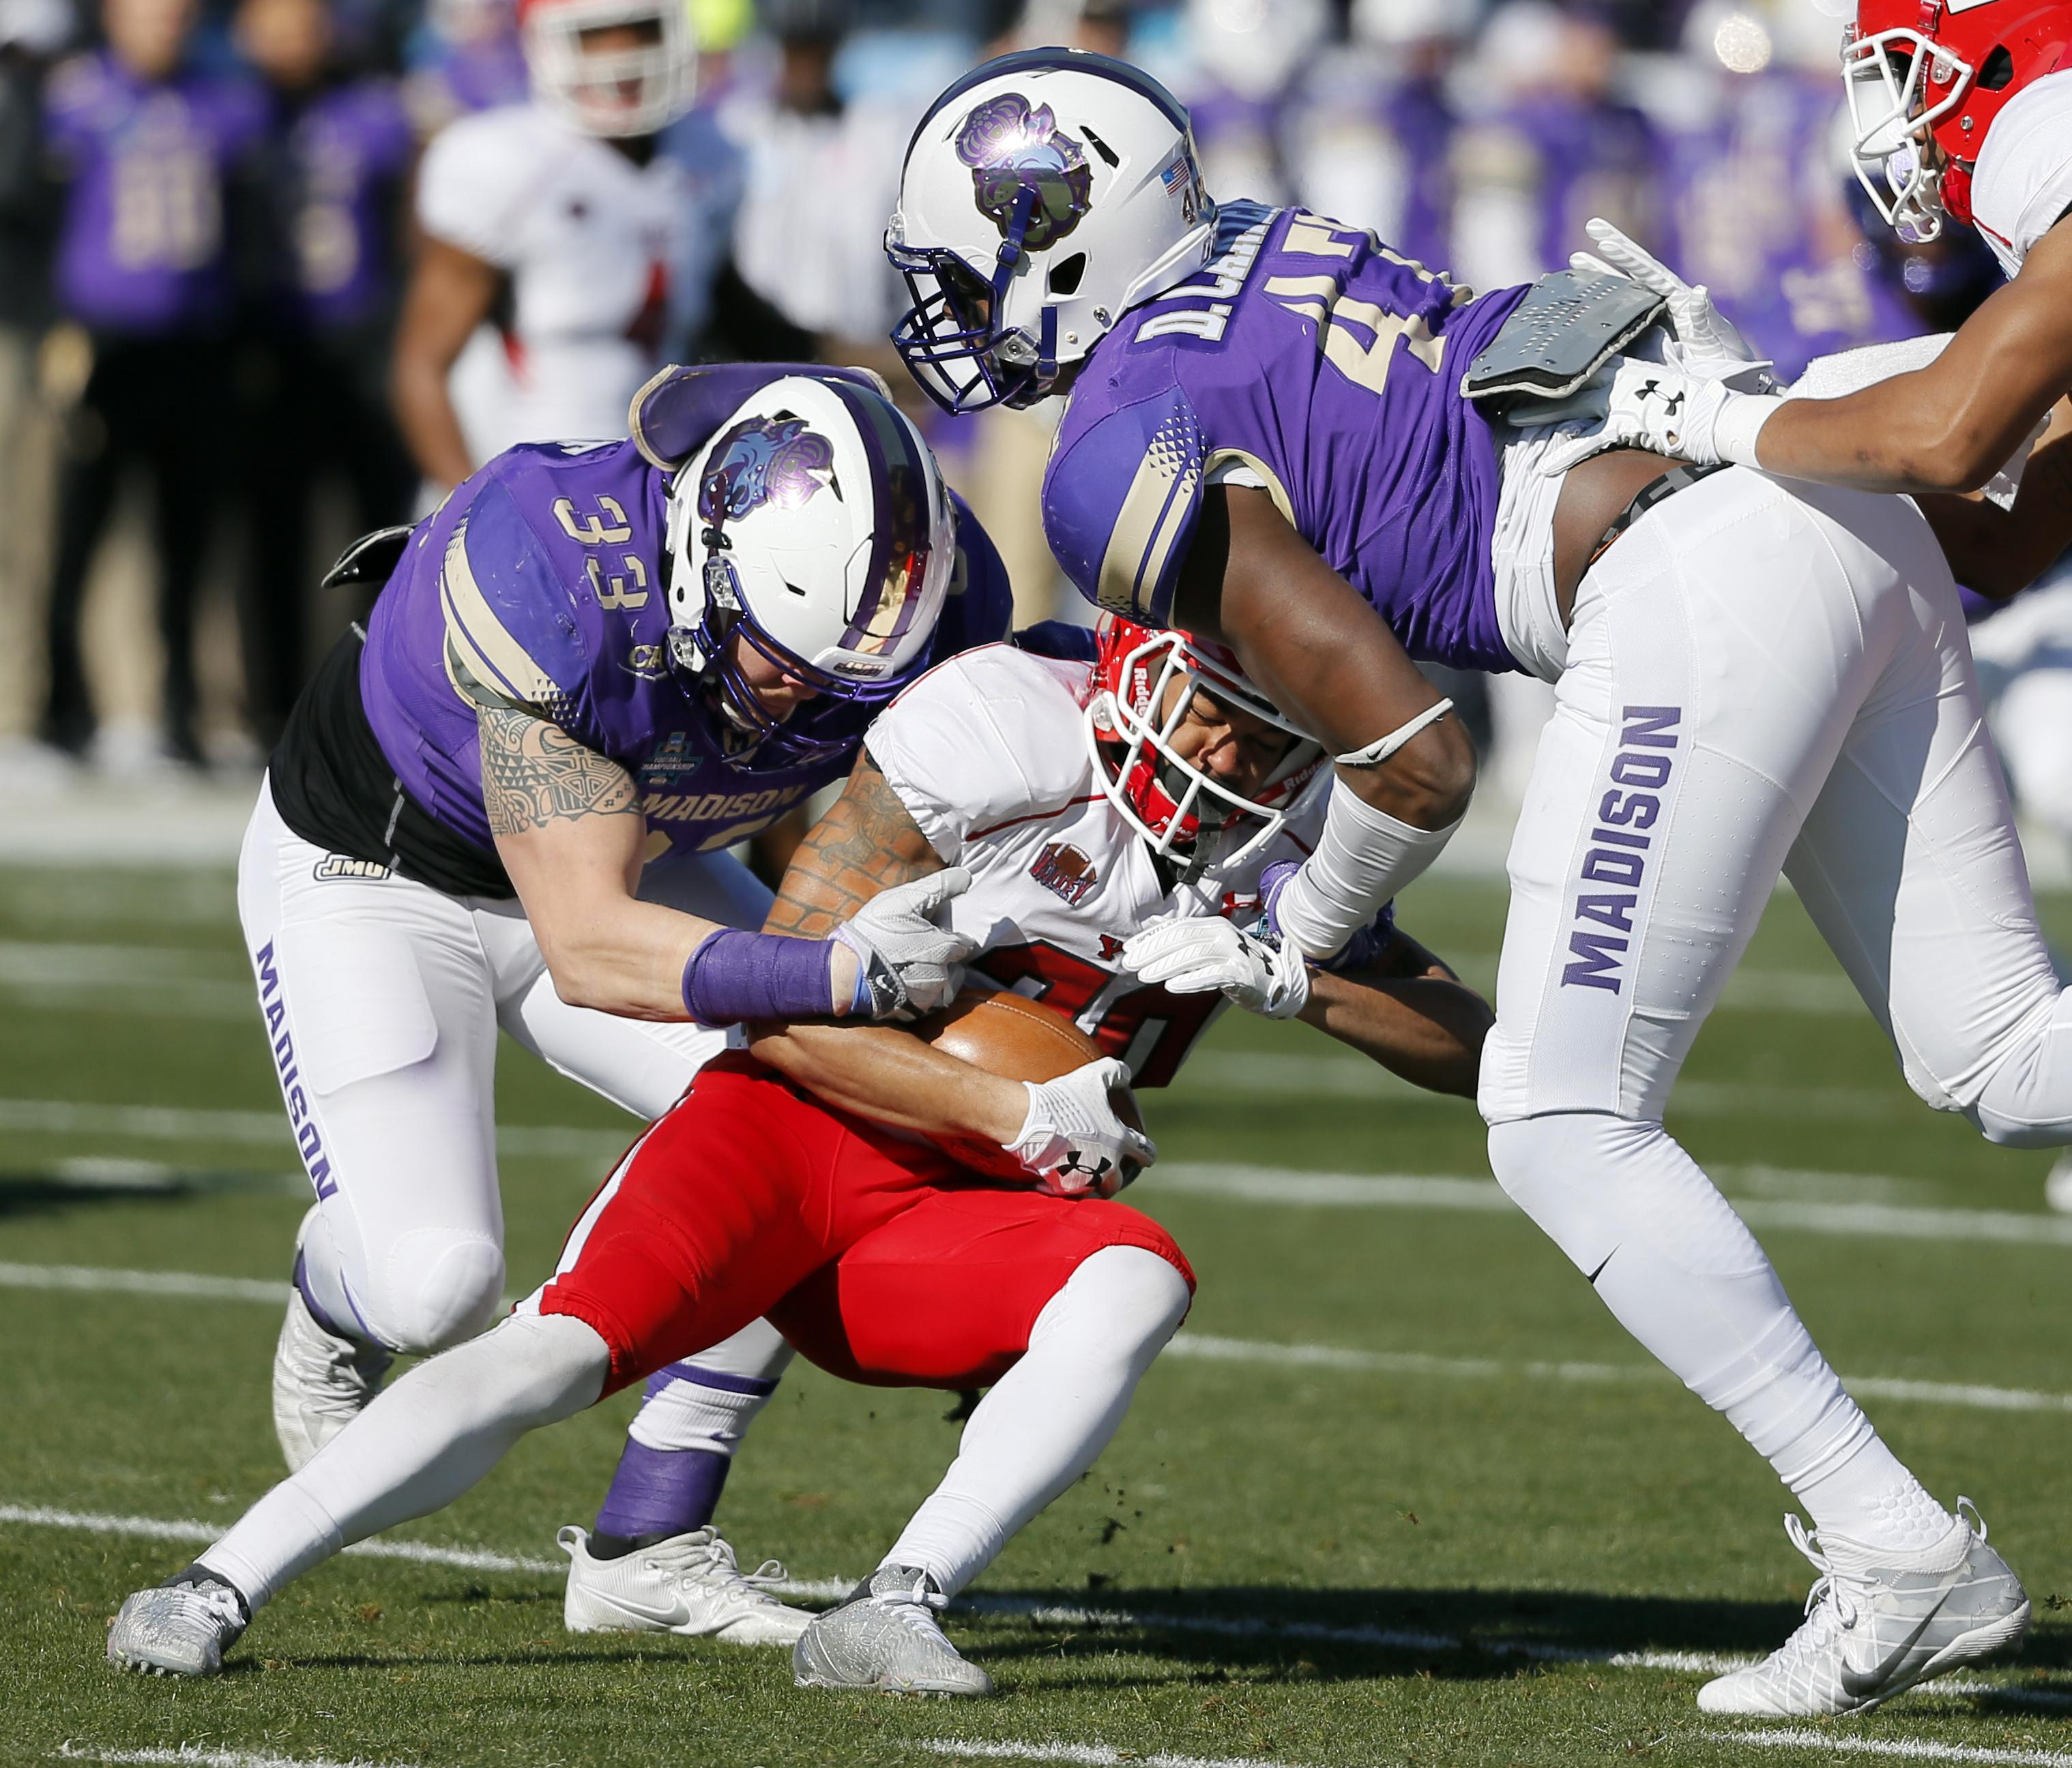 James Madison Wins Fcs Title Beats Youngstown State 28 14 The